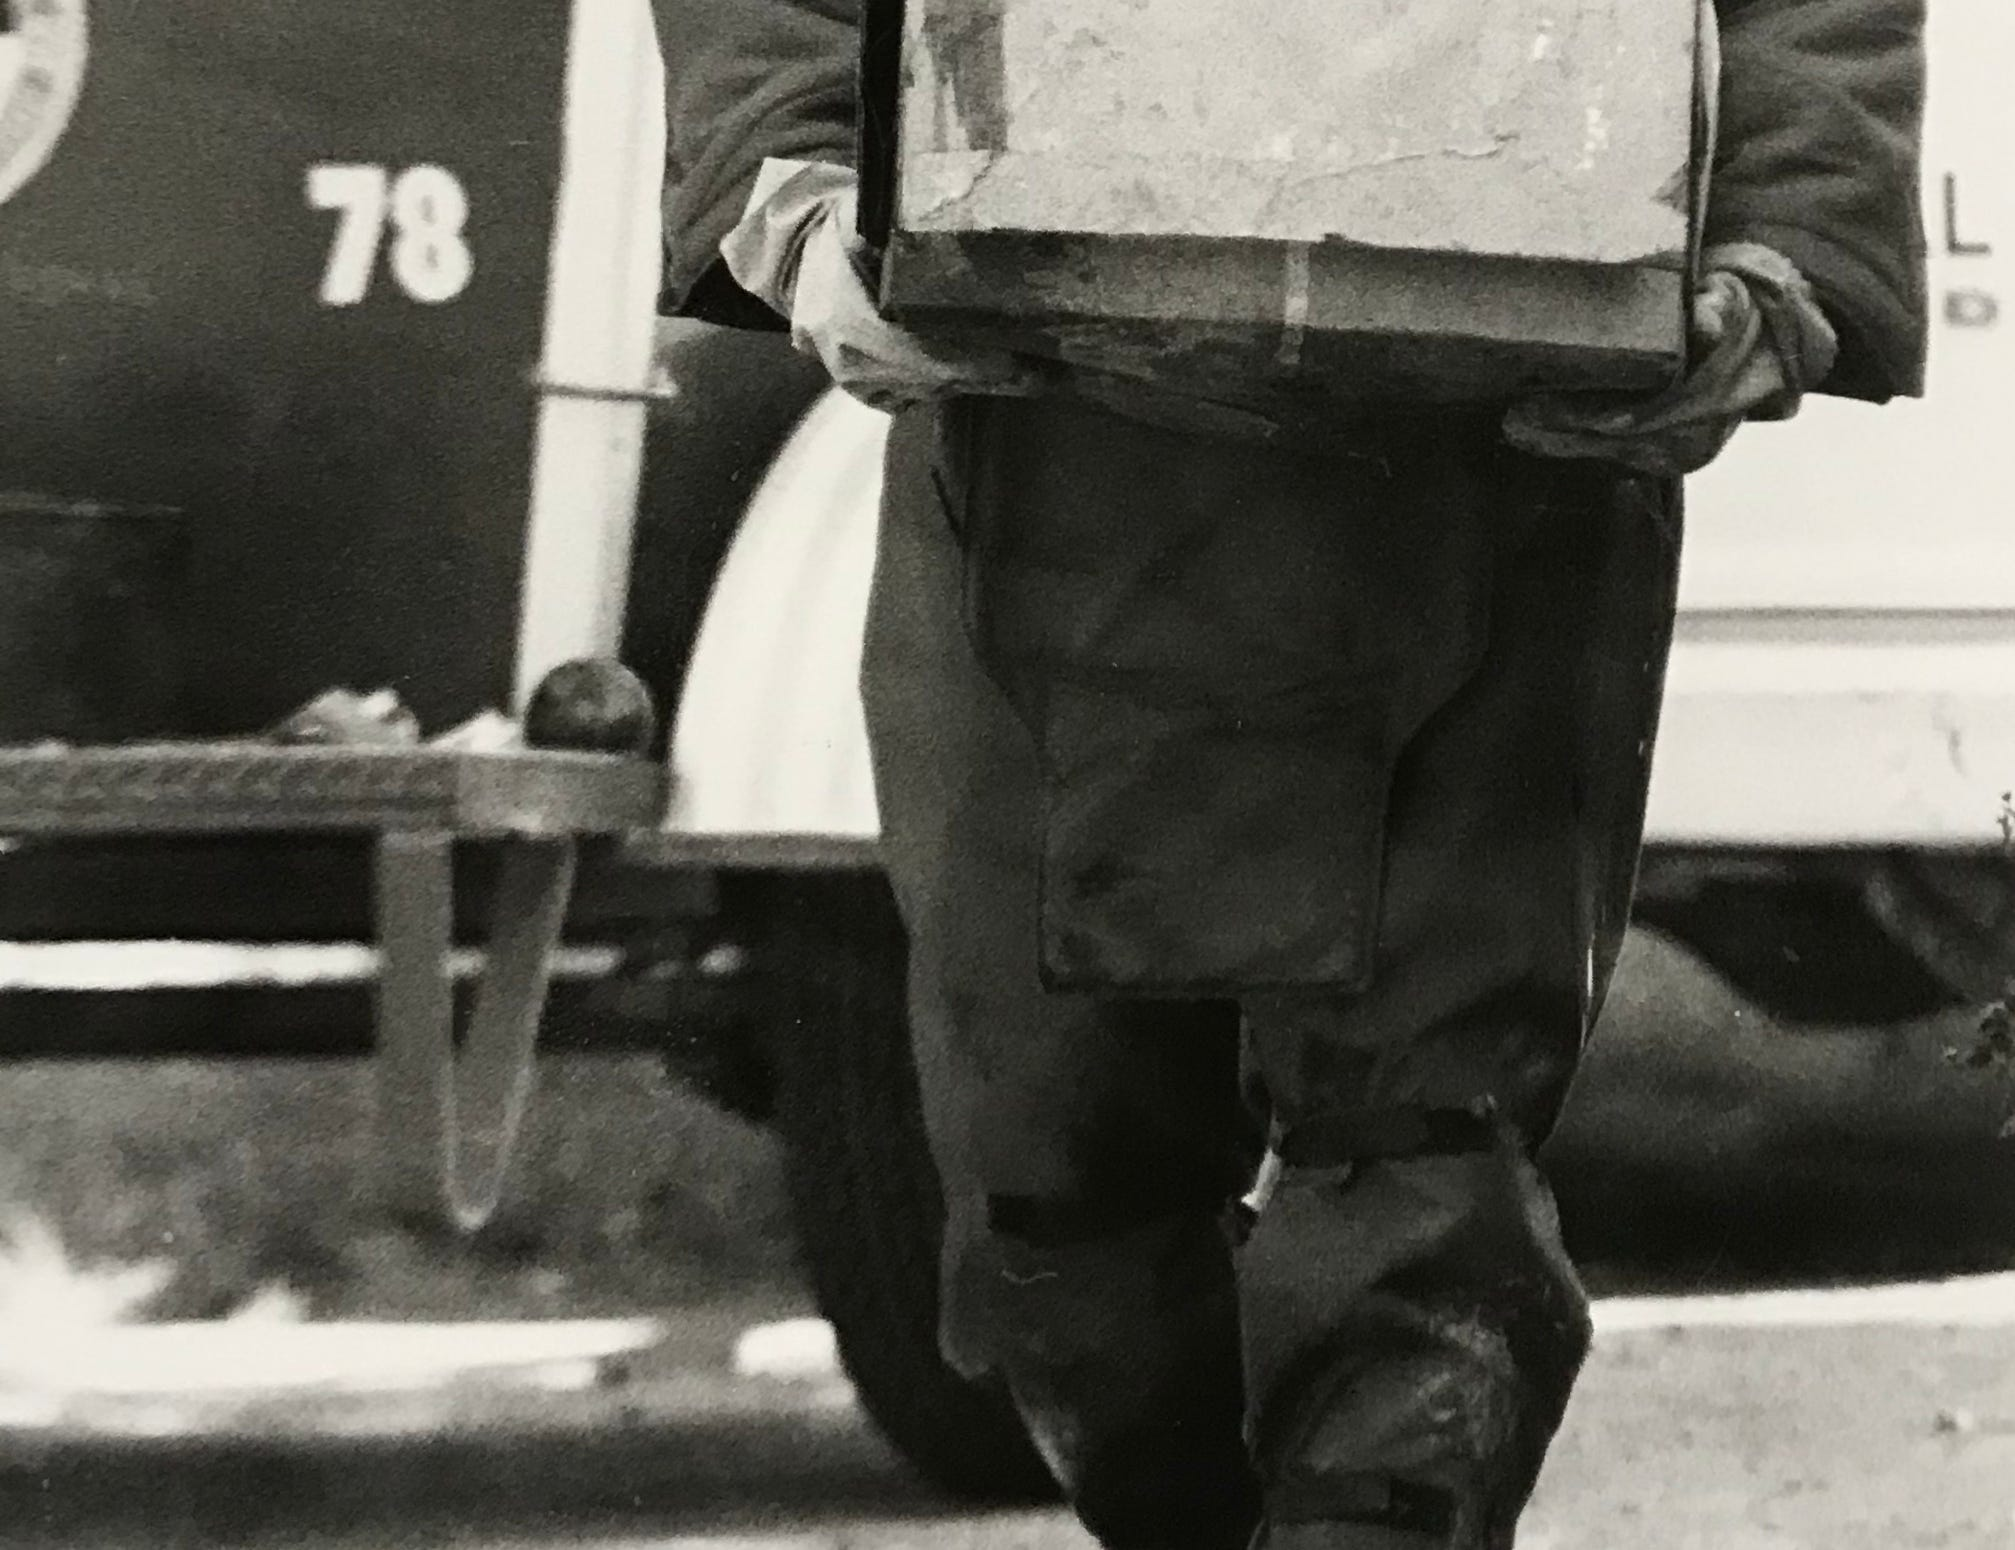 Lloyd Kaczmarek with the State Fire Marshal's hazardous materials unit removes a box of dynamite found in a mausoleum at Grandview Cemetery in September 1984.